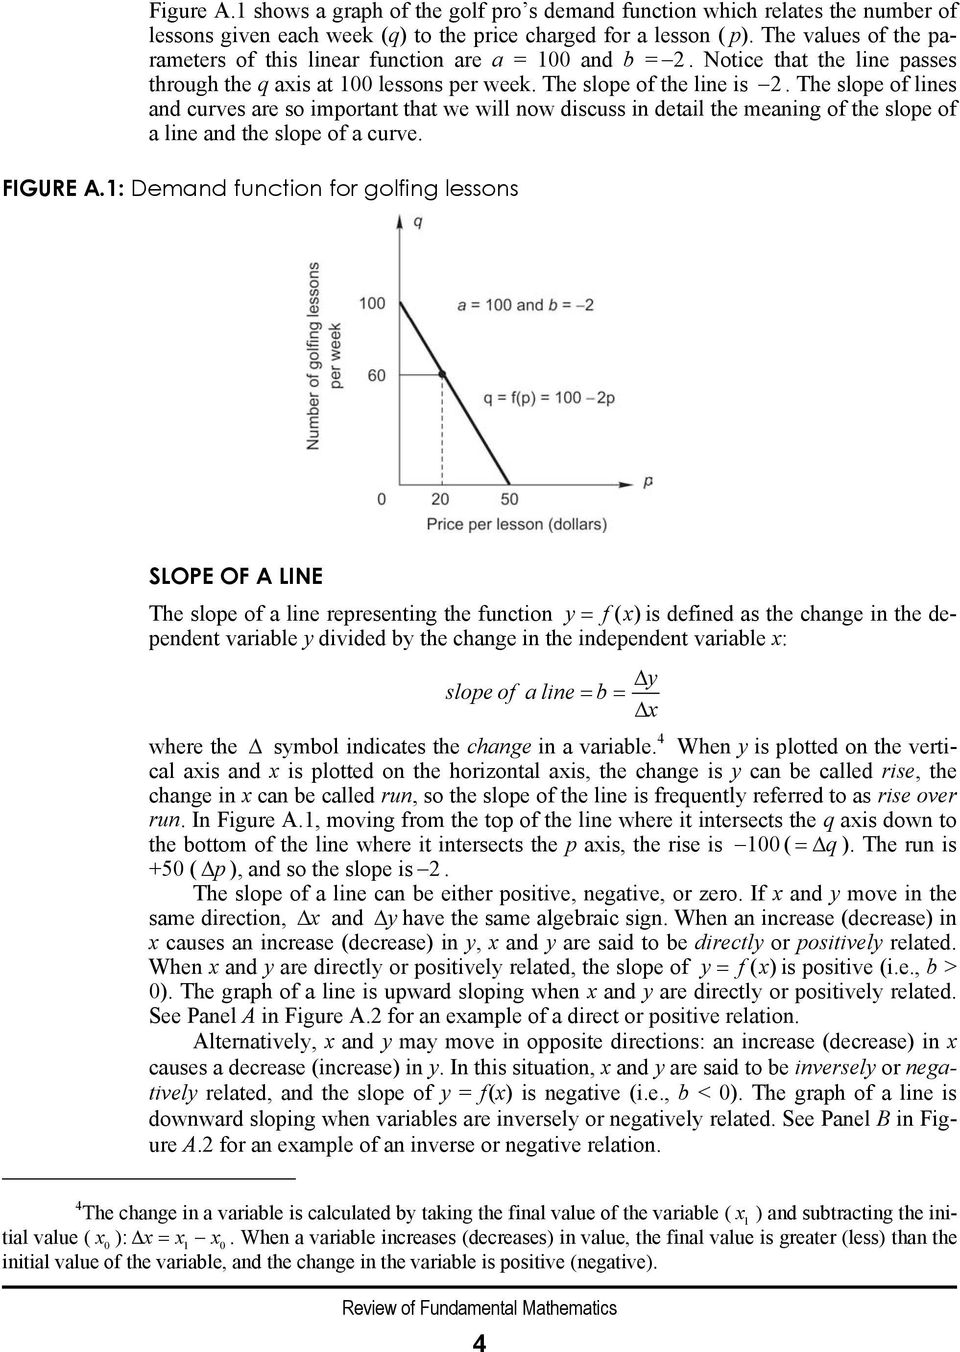 The slope of lines and curves are so important that we will now discuss in detail the meaning of the slope of a line and the slope of a curve. FIGURE A.